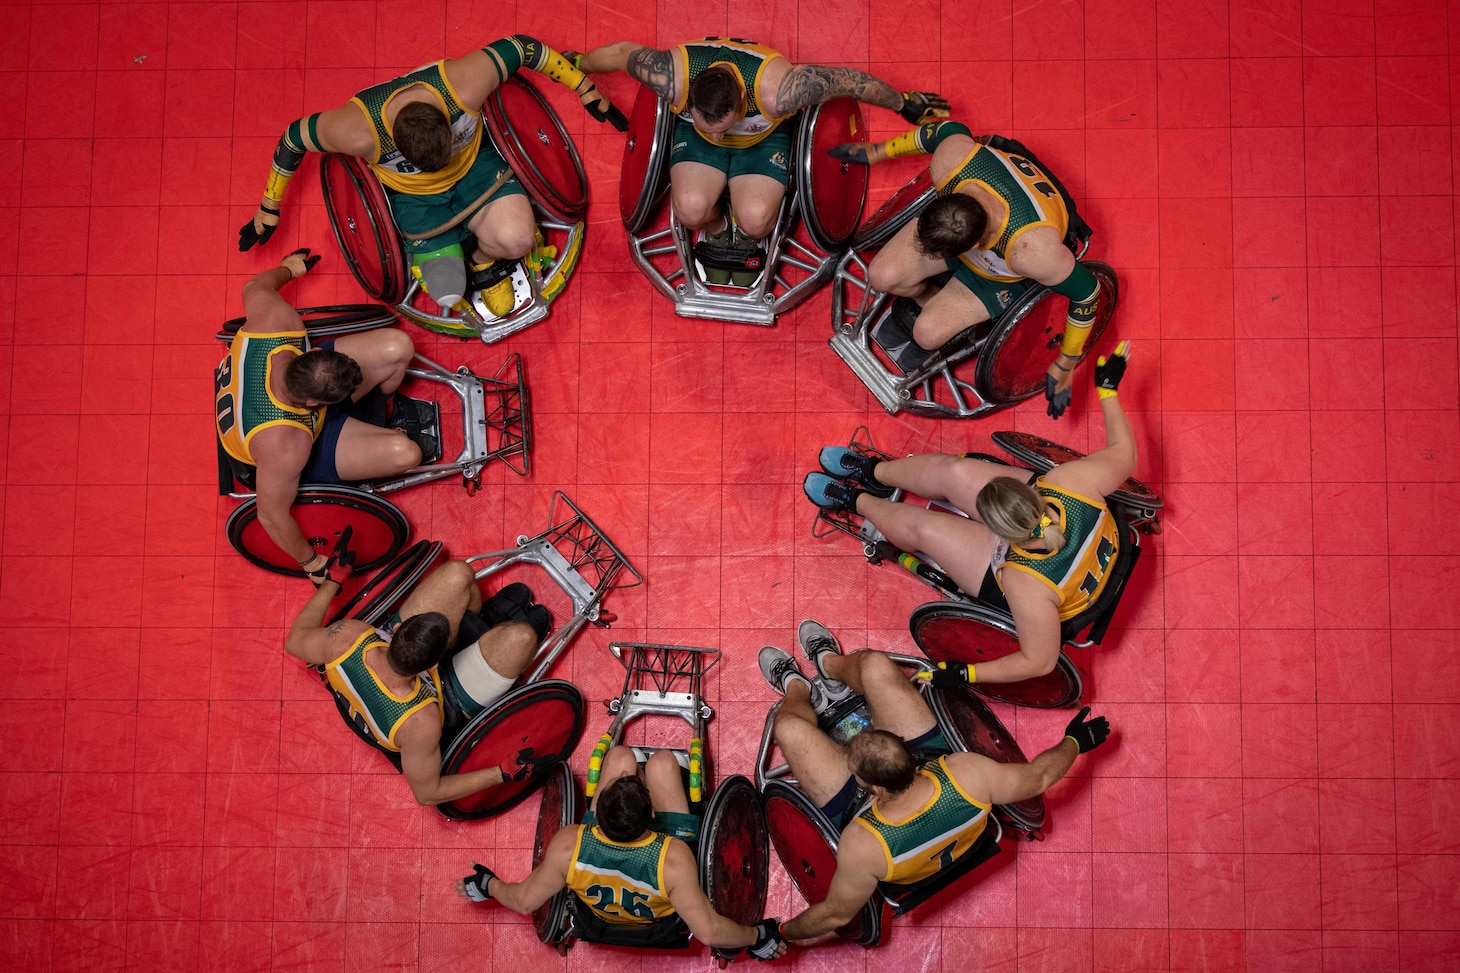 Overhead photo of Team Australia Wounded Warriors huddle in a circle at half time during the 2019 DoD Warrior Games wheelchair rugby preliminaries in Tampa, Florida.